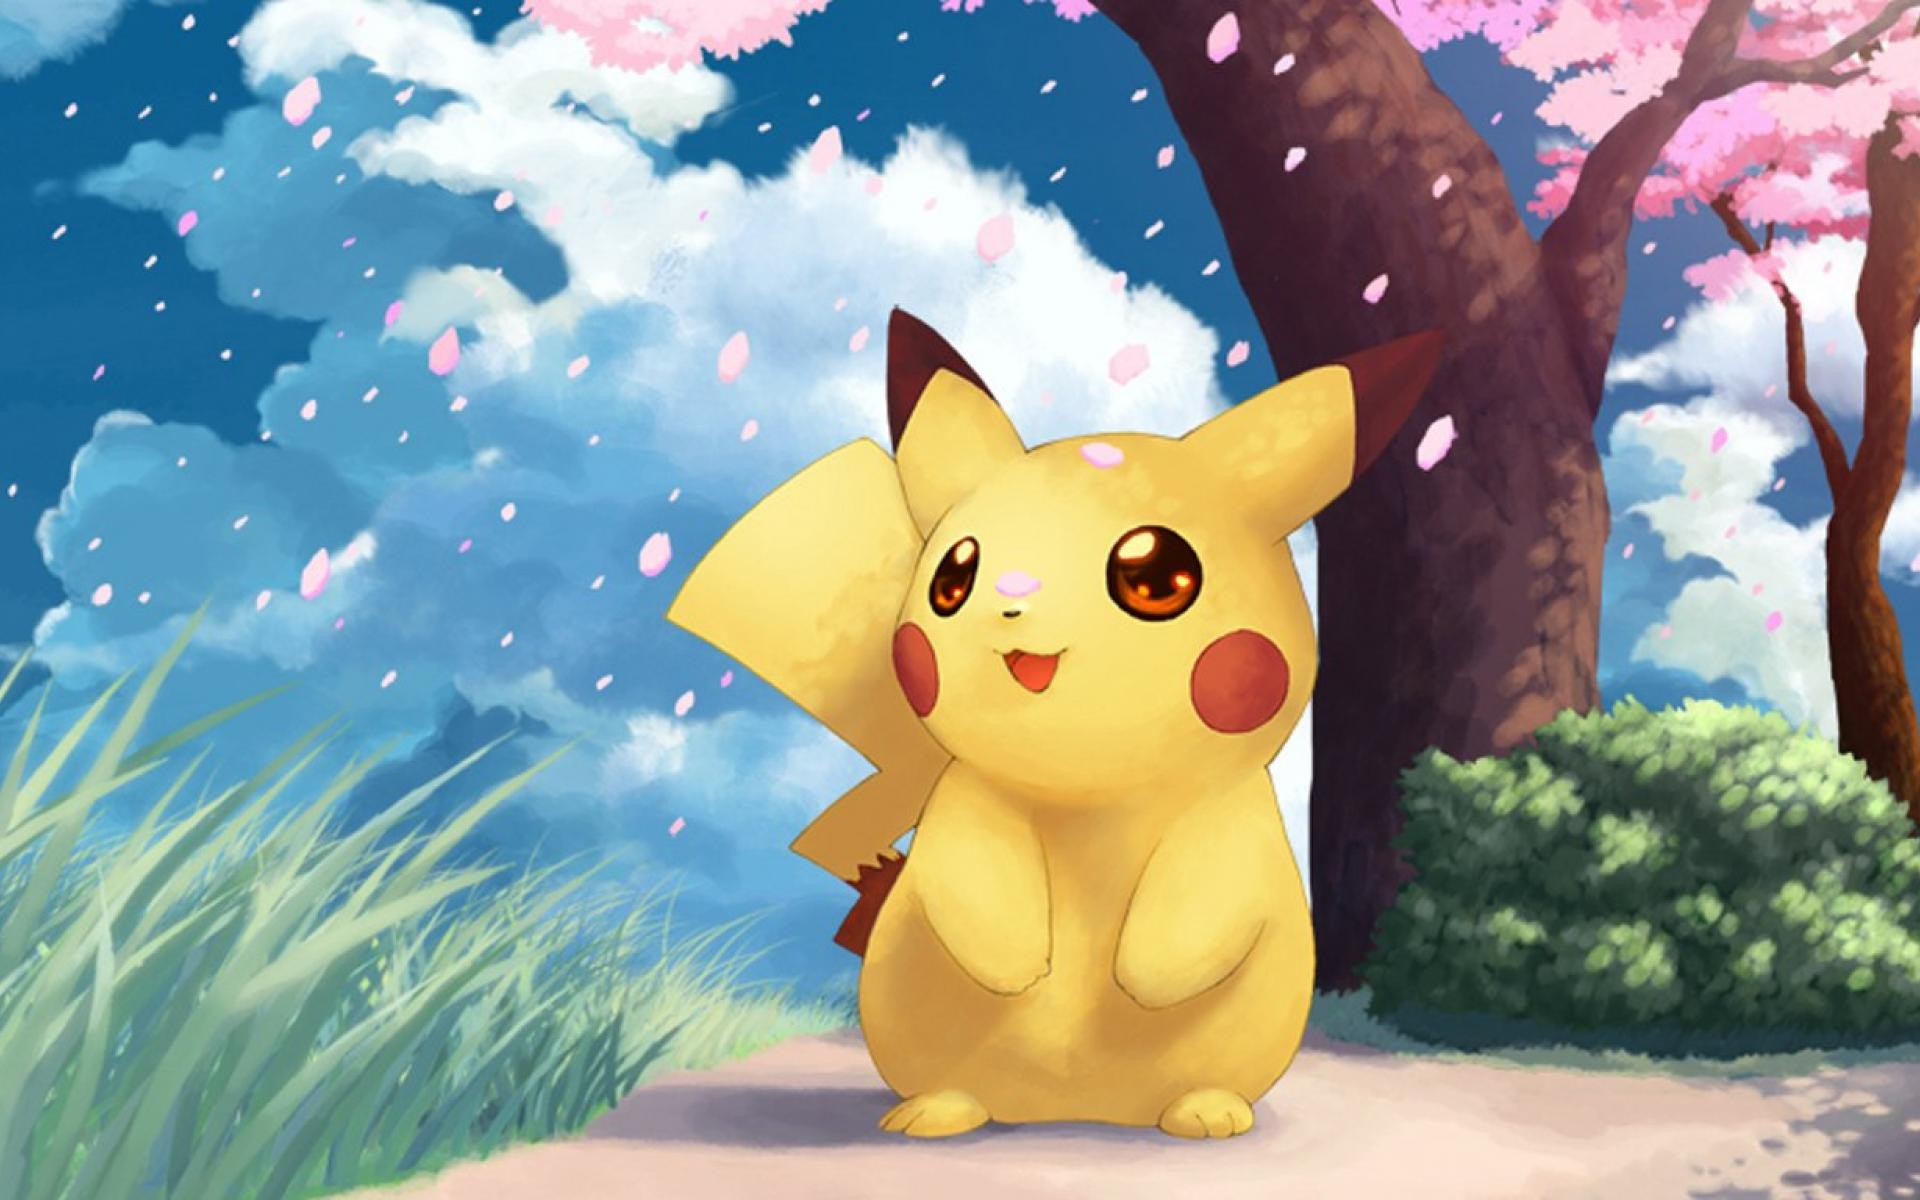 Pikachu Wallpaper Free Download